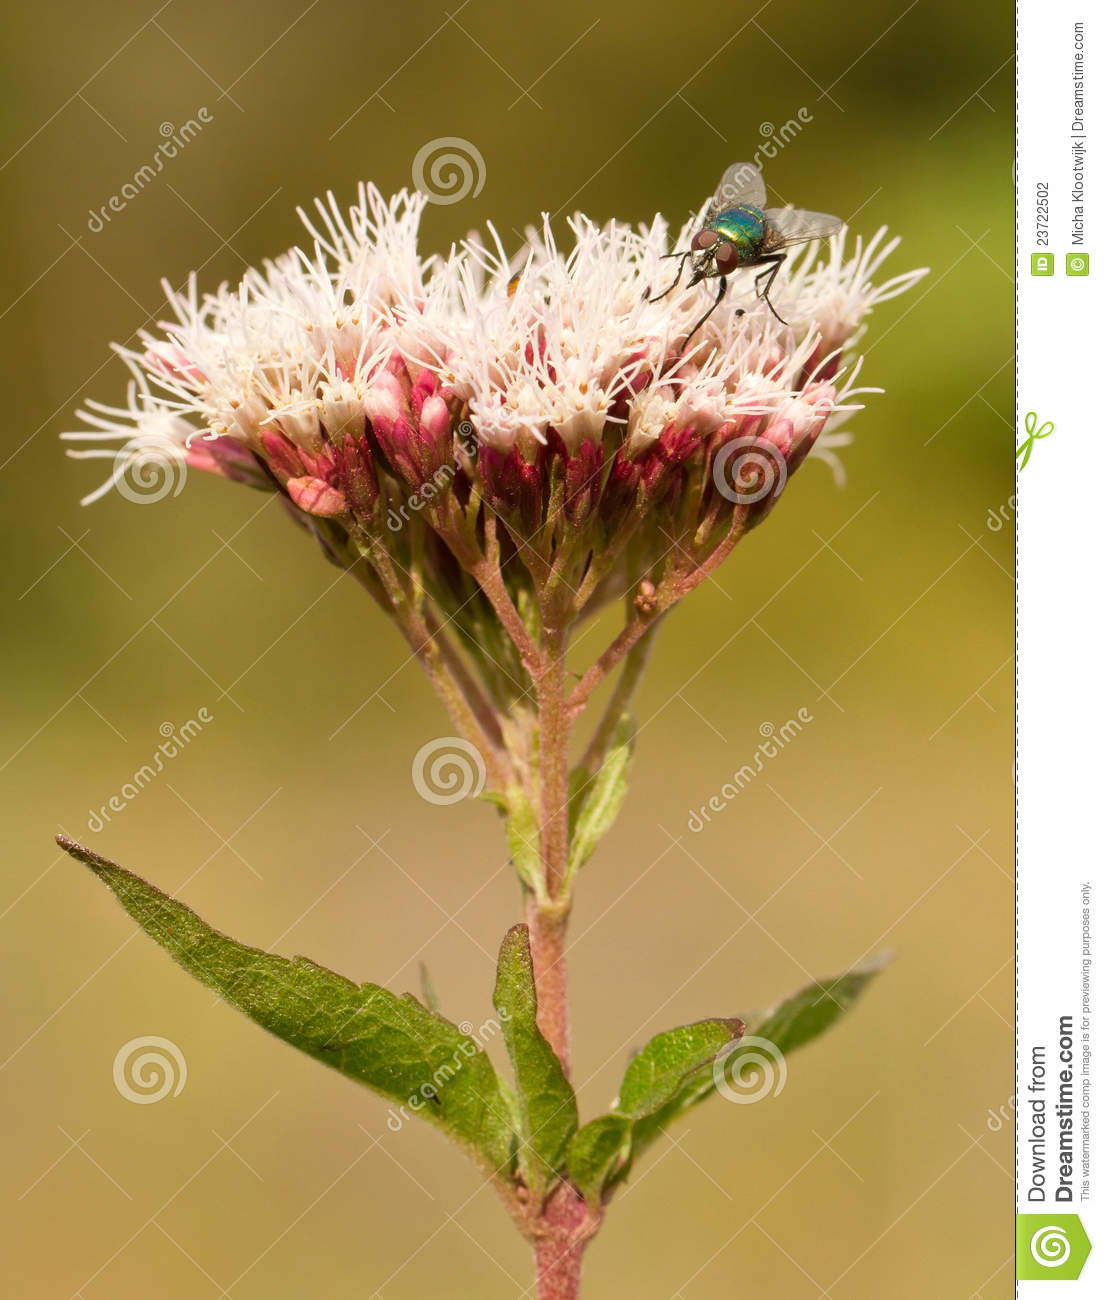 A fly on a pink flower